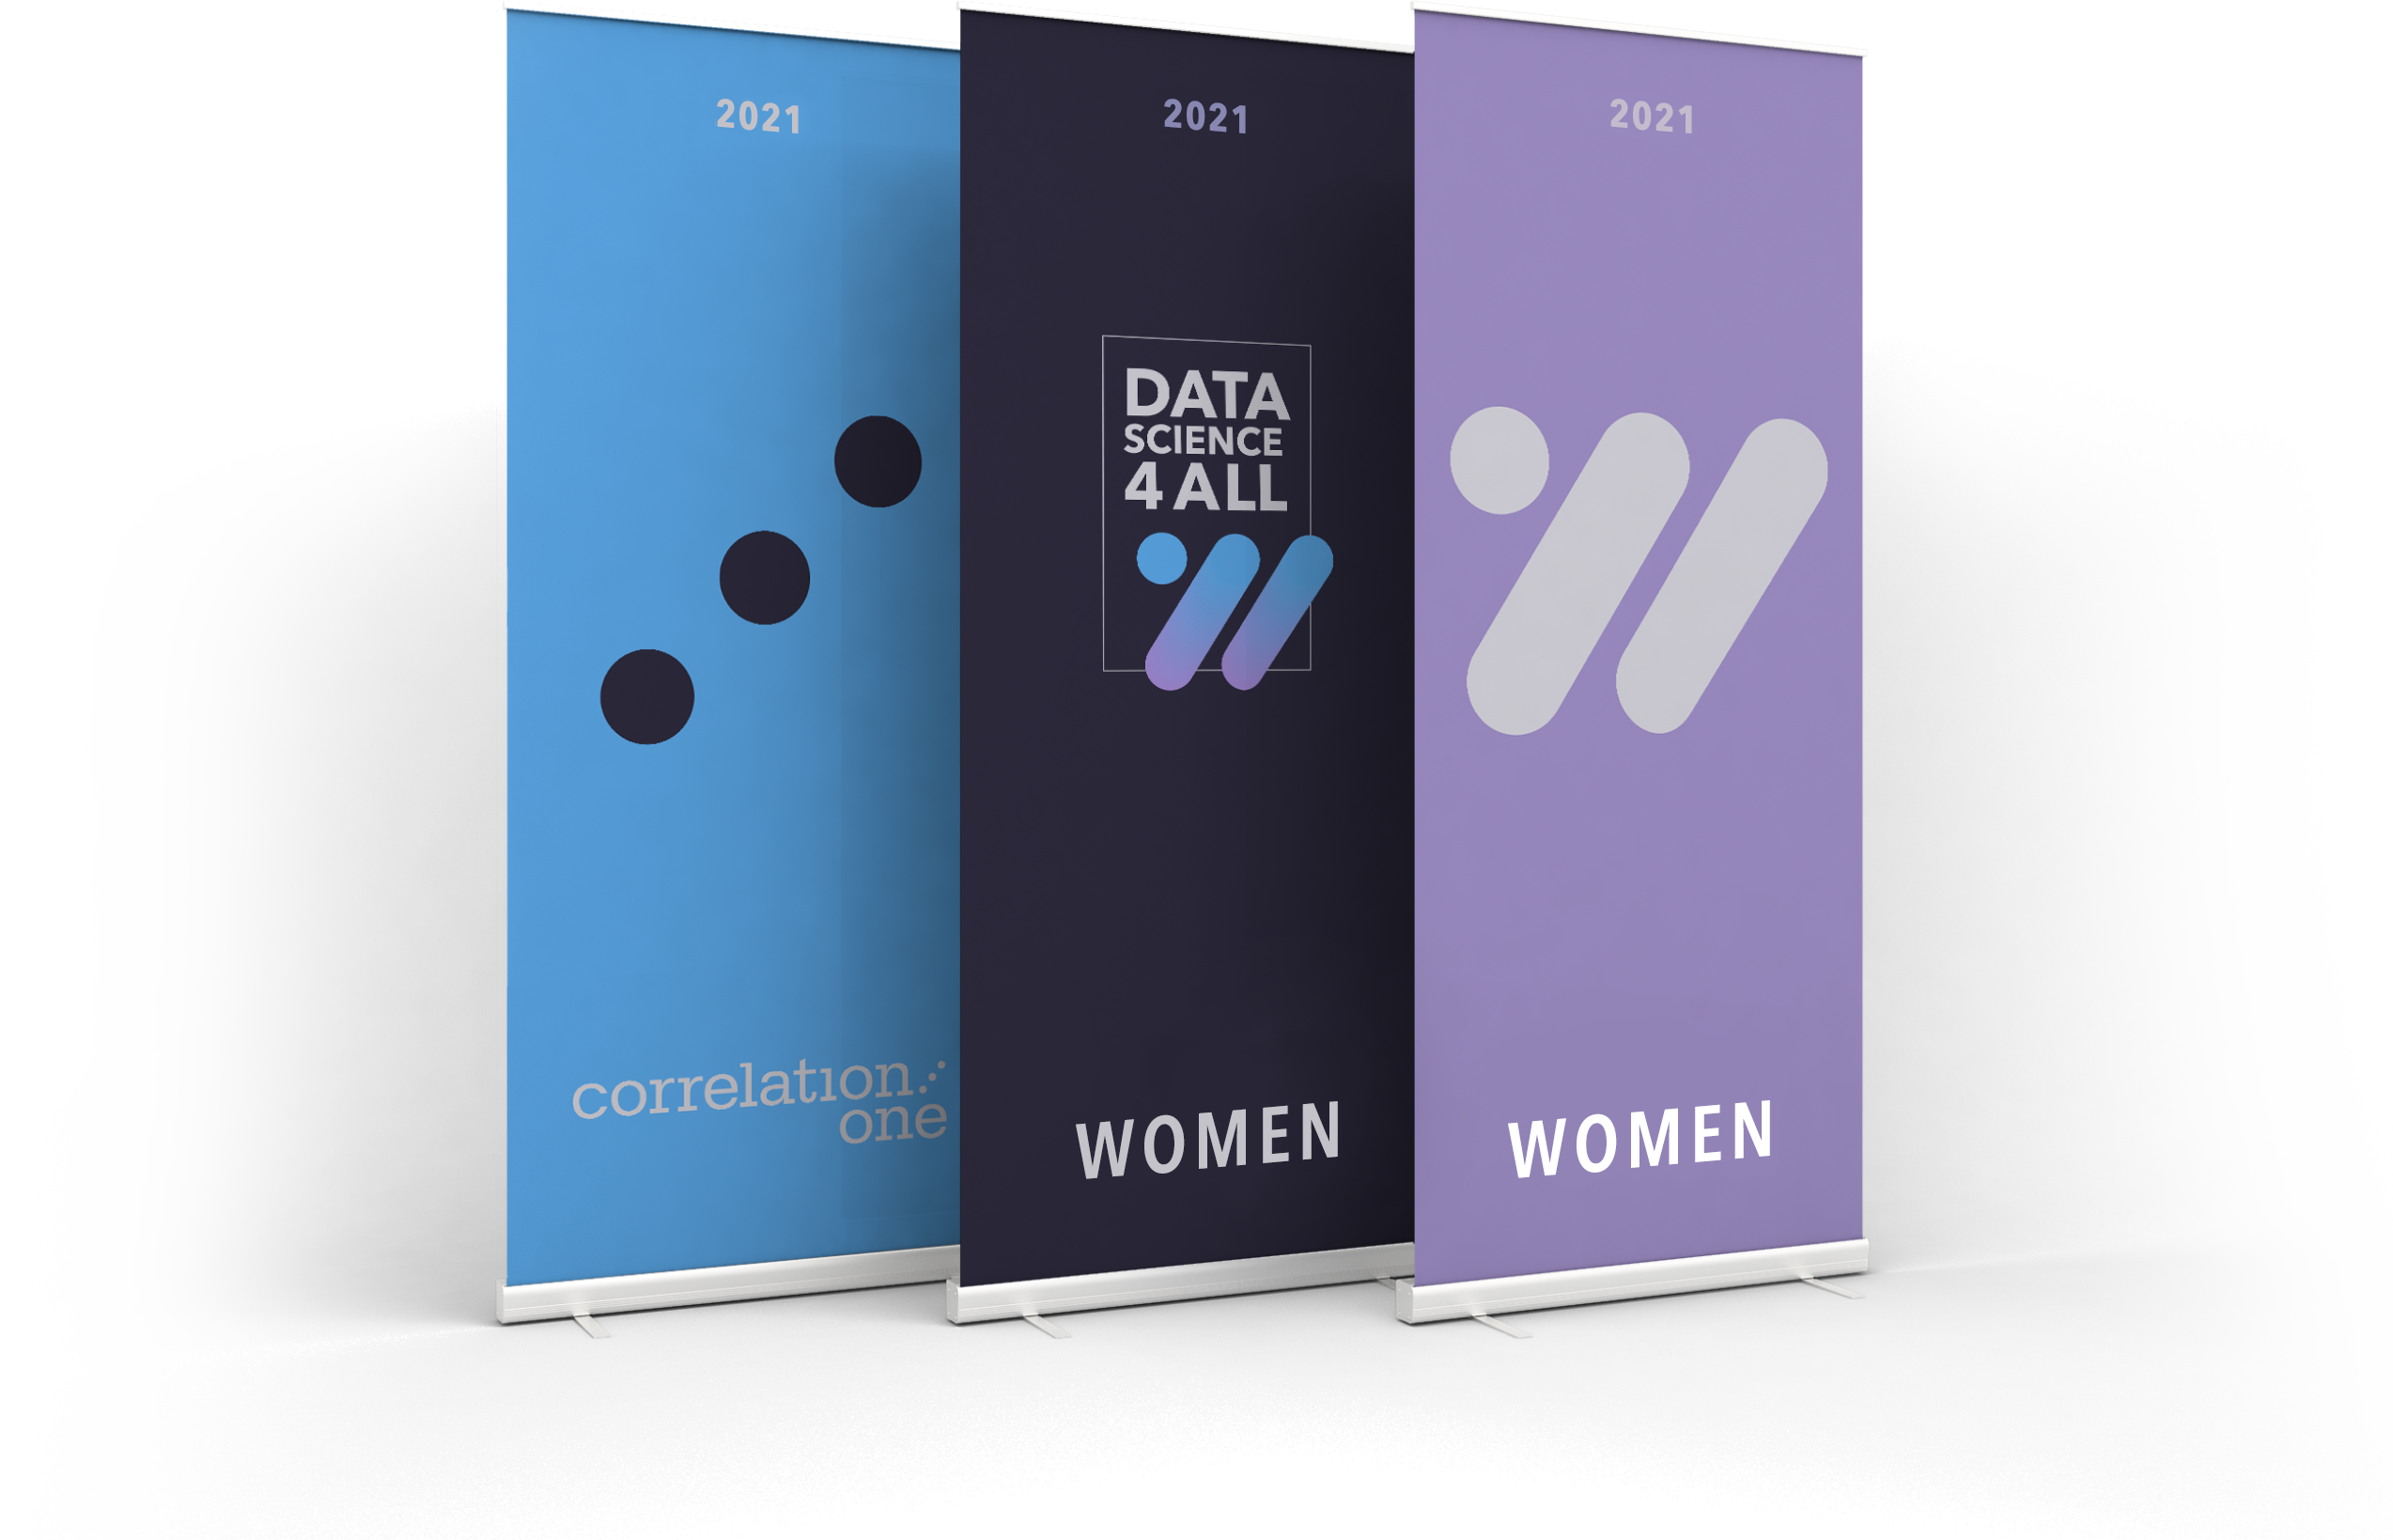 Data Science For All / Women Sponsorship Tiers